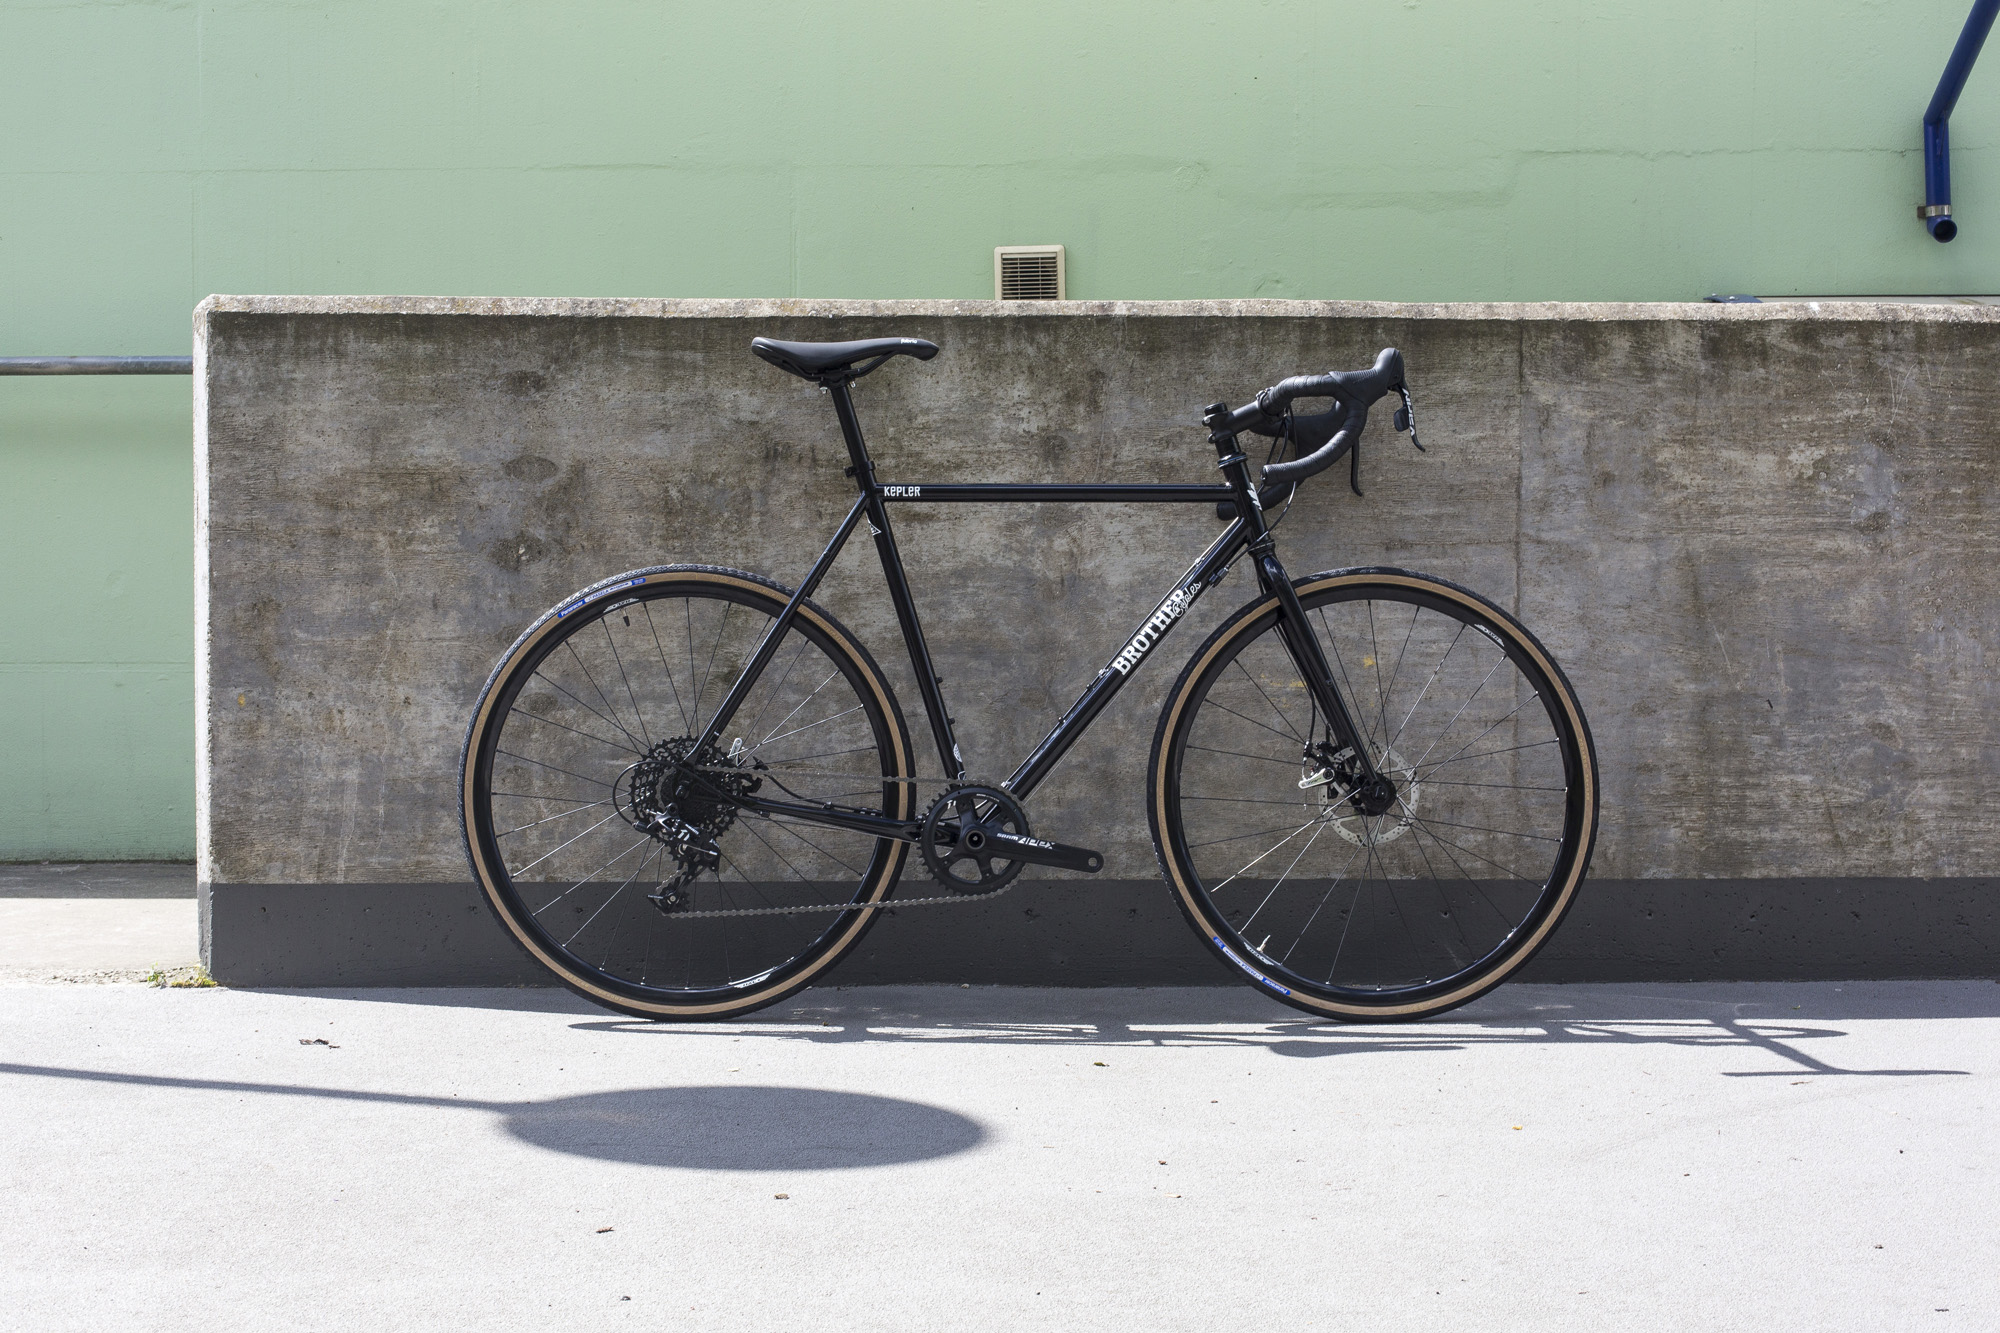 seabass-cycles-instore-bikes-25-april-2019-brother-cycles-kepler-disc-complete-black-5188.jpg